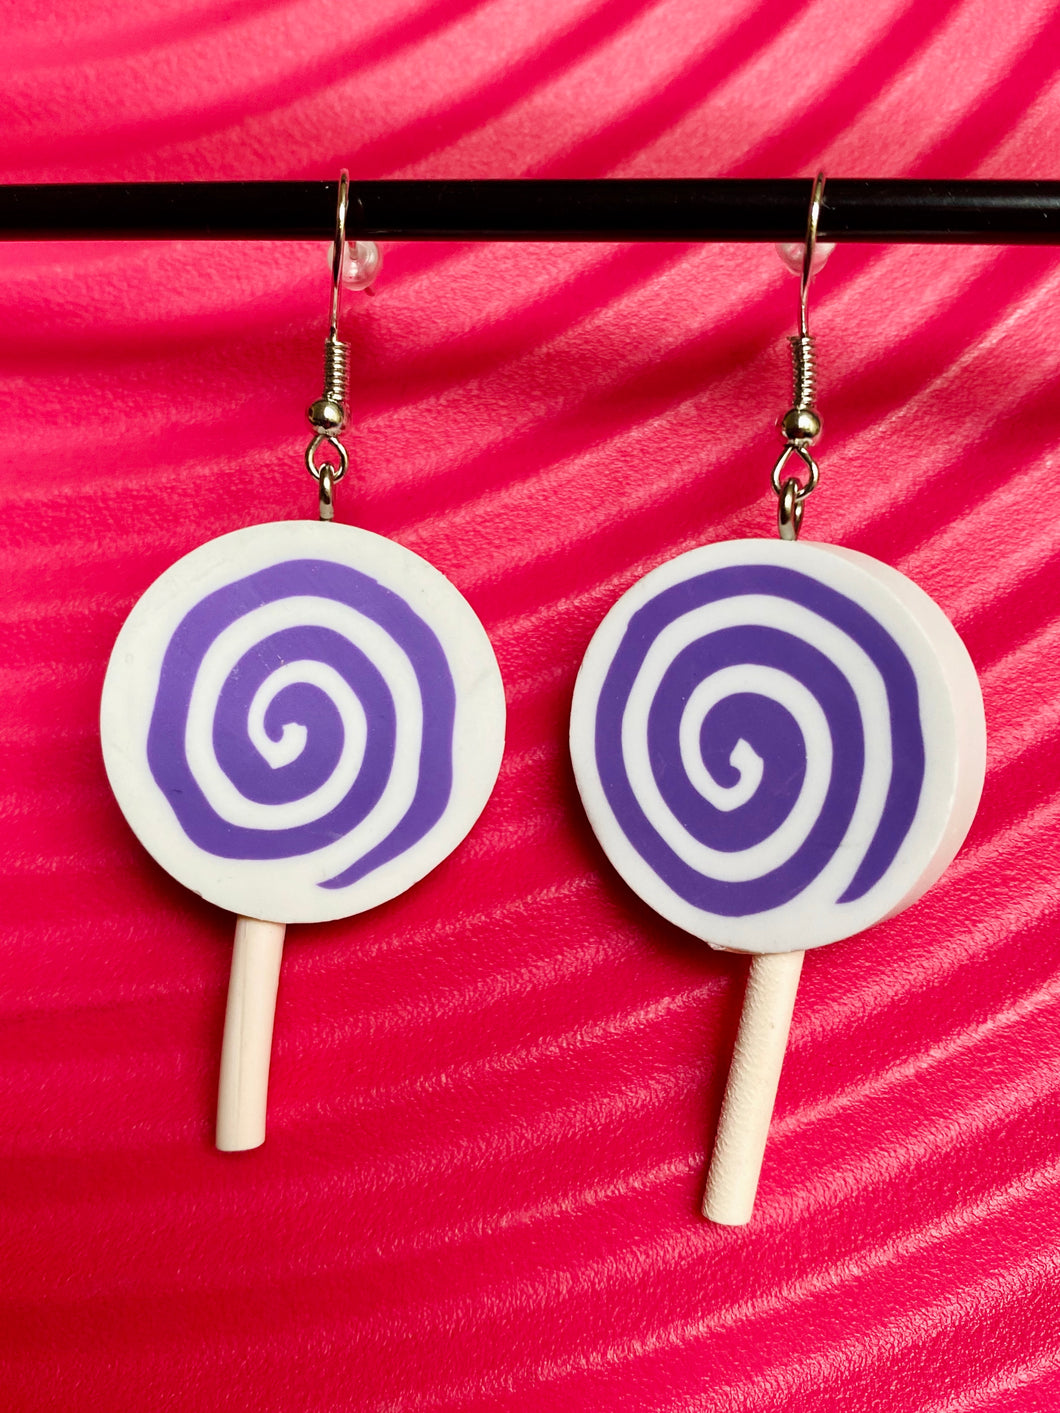 Vintage Inspired Earrings Lollipops in White and Purple with Silver Detail